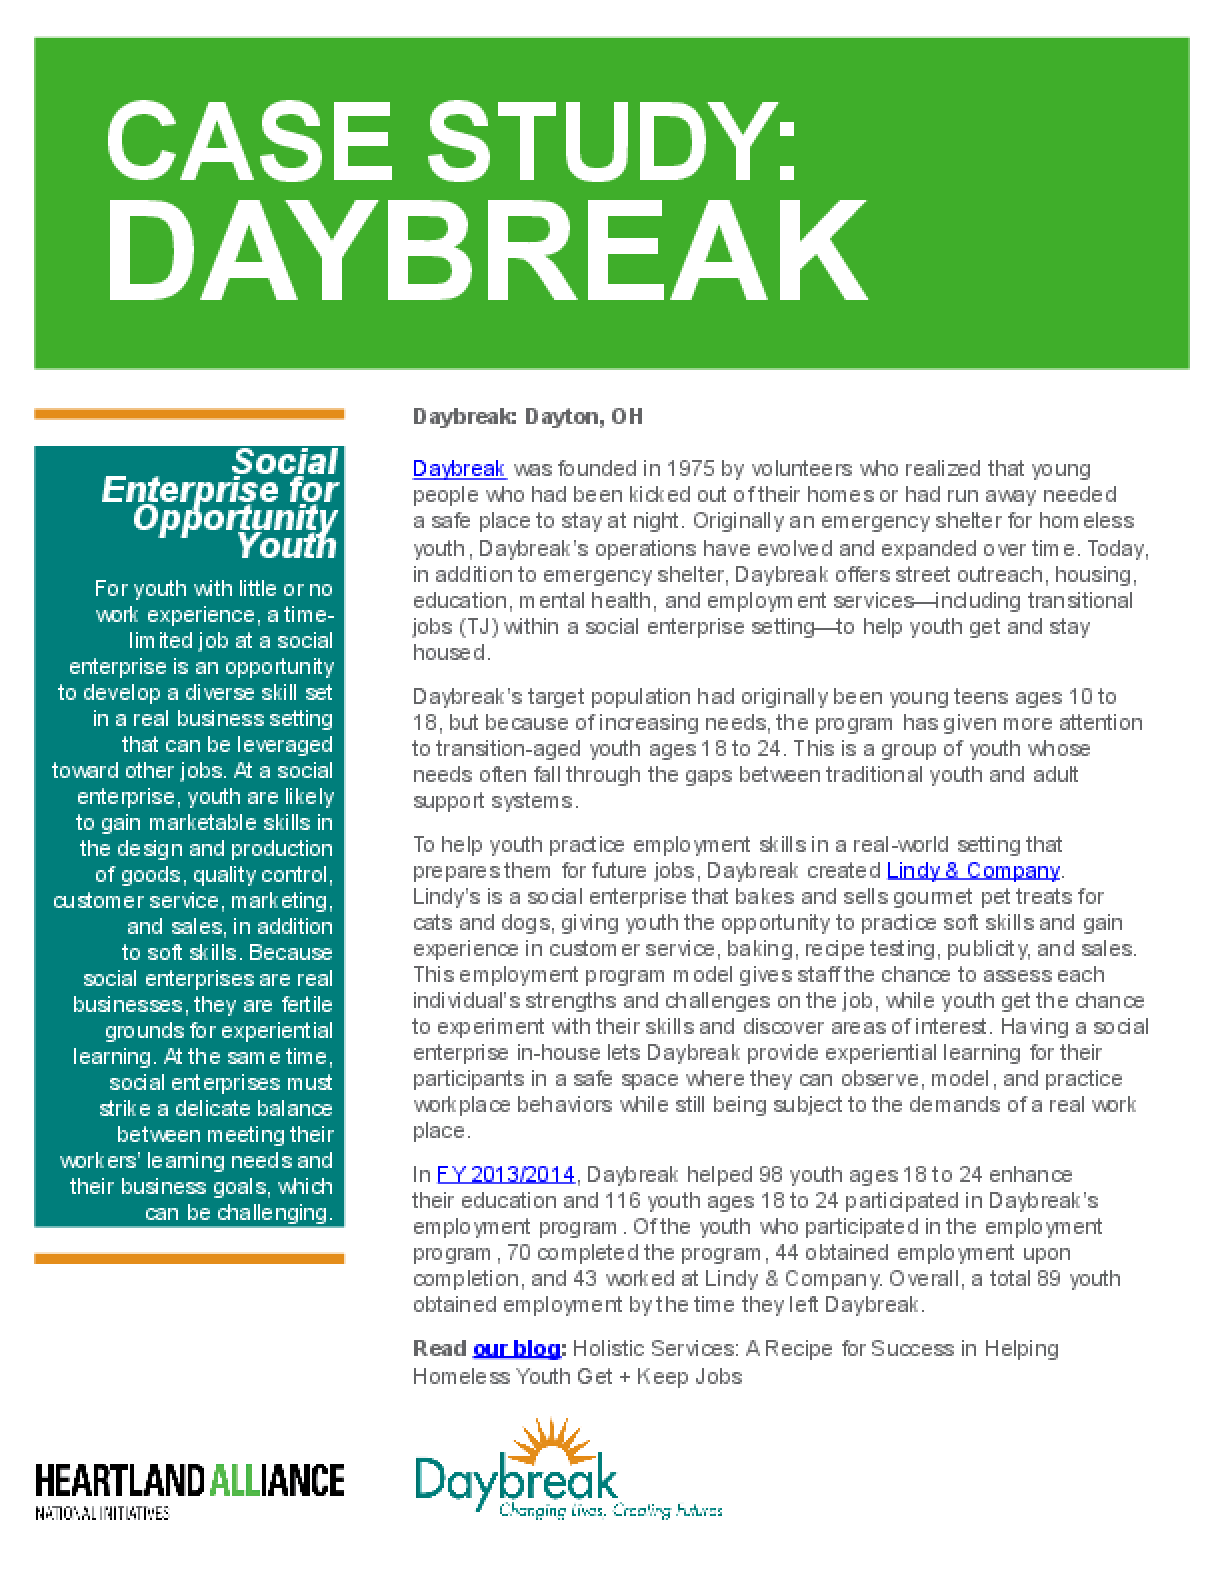 Opportunity Youth Employment Program Case Study: Daybreak